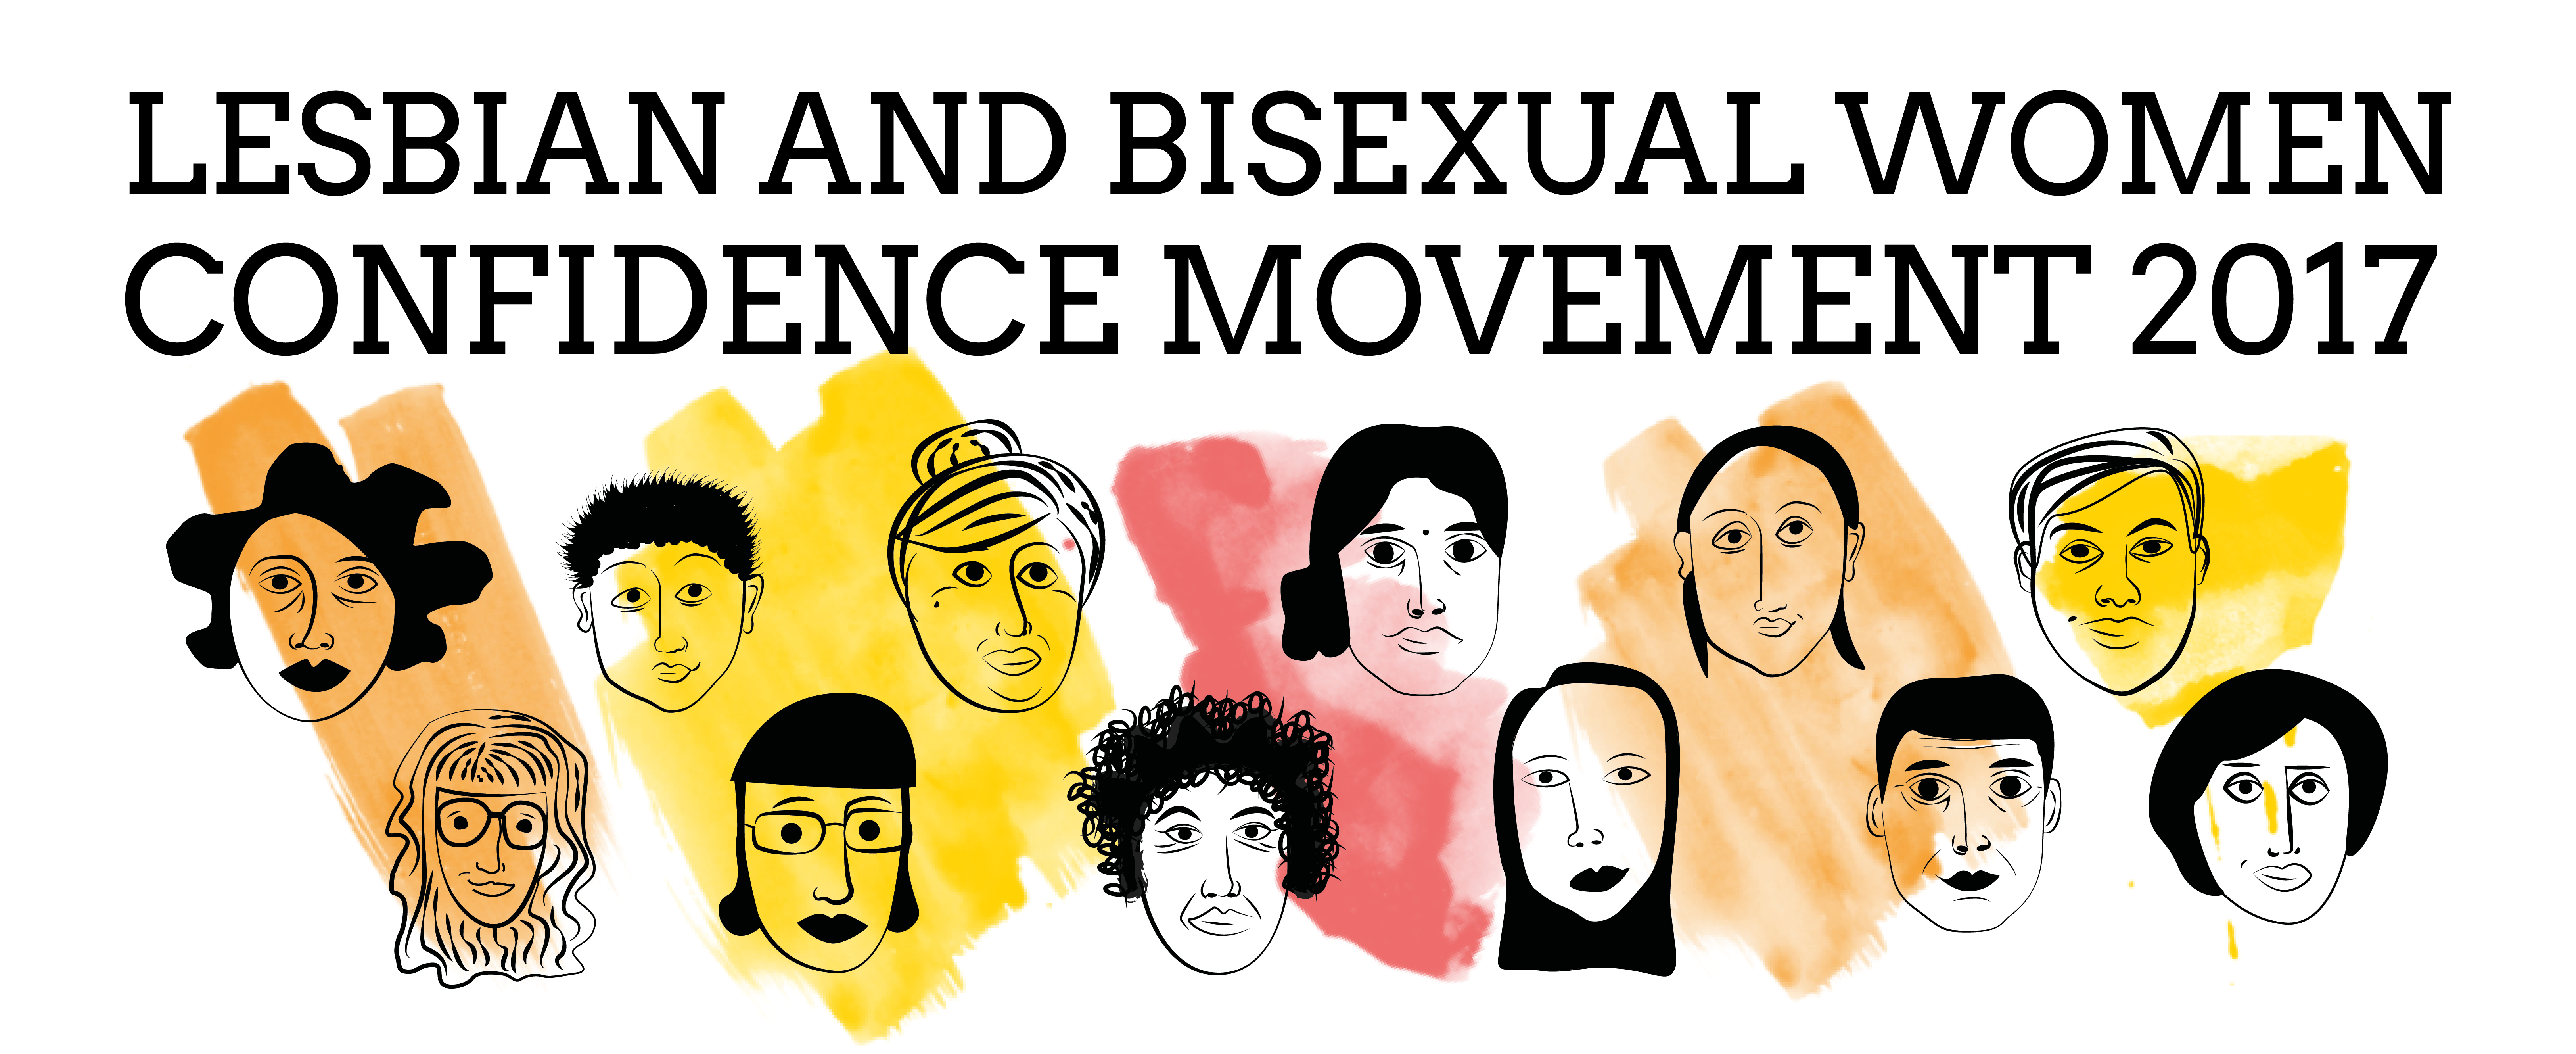 Lesbian and Bisexual Women Confidence Movement 2017